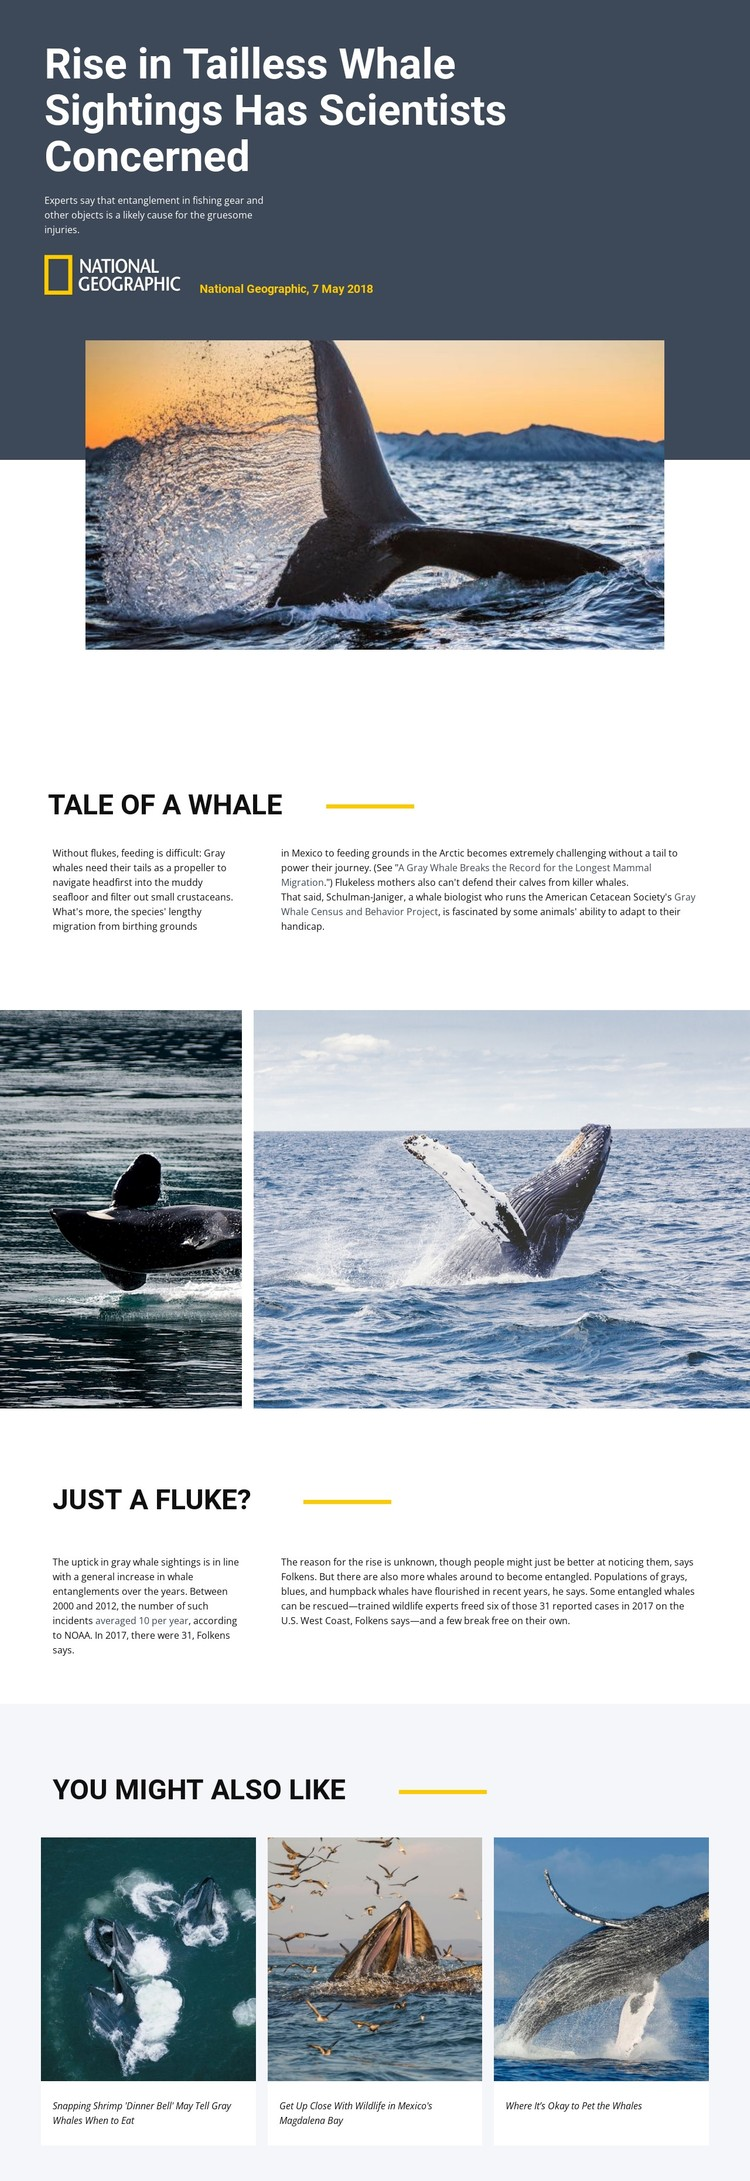 Whale watching center Static Site Generator